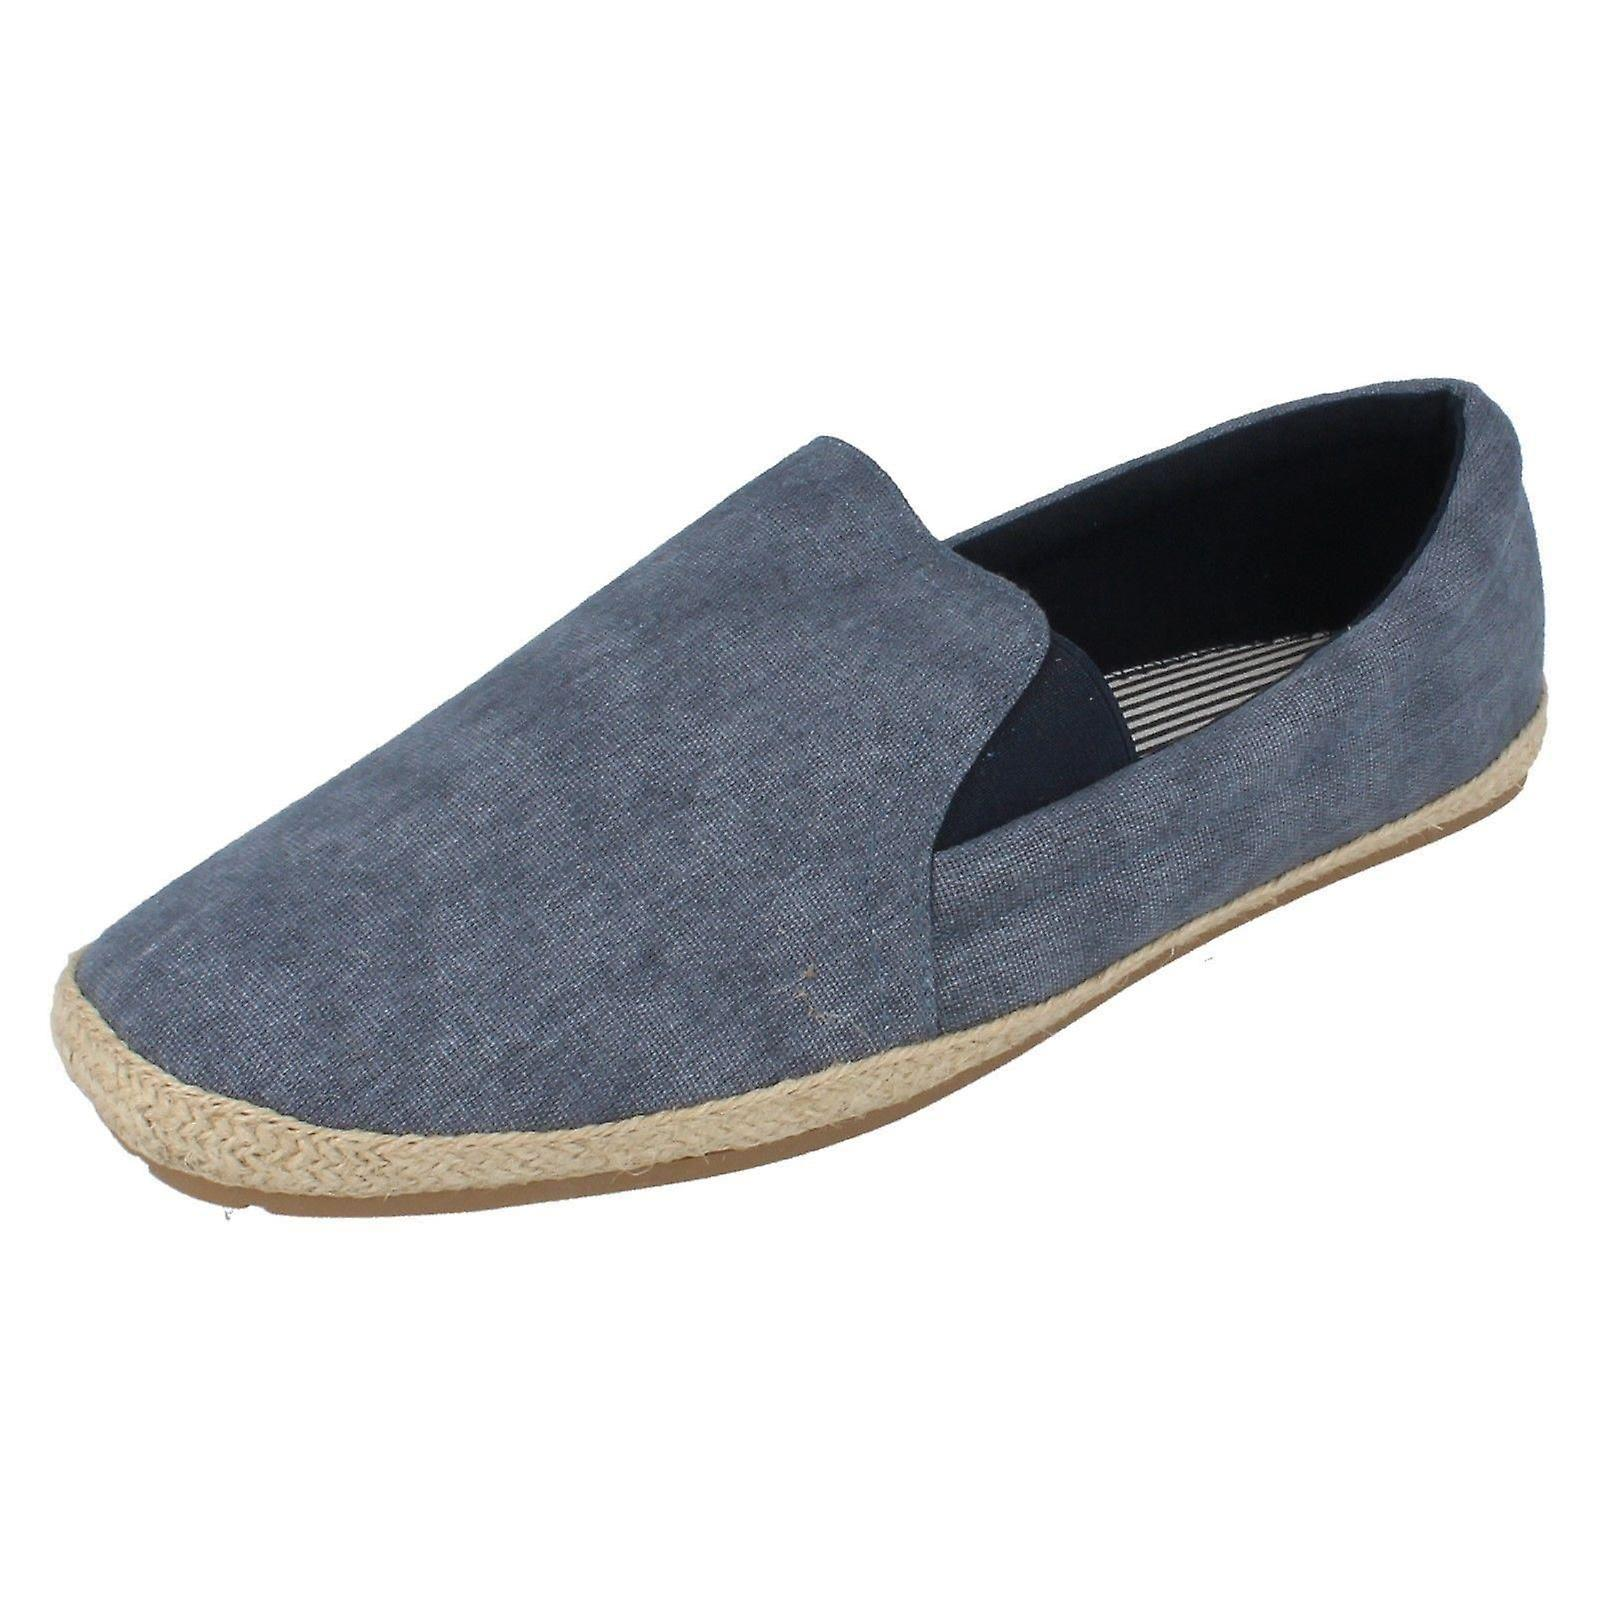 Mens Maverick Canvas Shoes - Navy Canvas - UK Size 9 - EU Size 43 - US Size 10